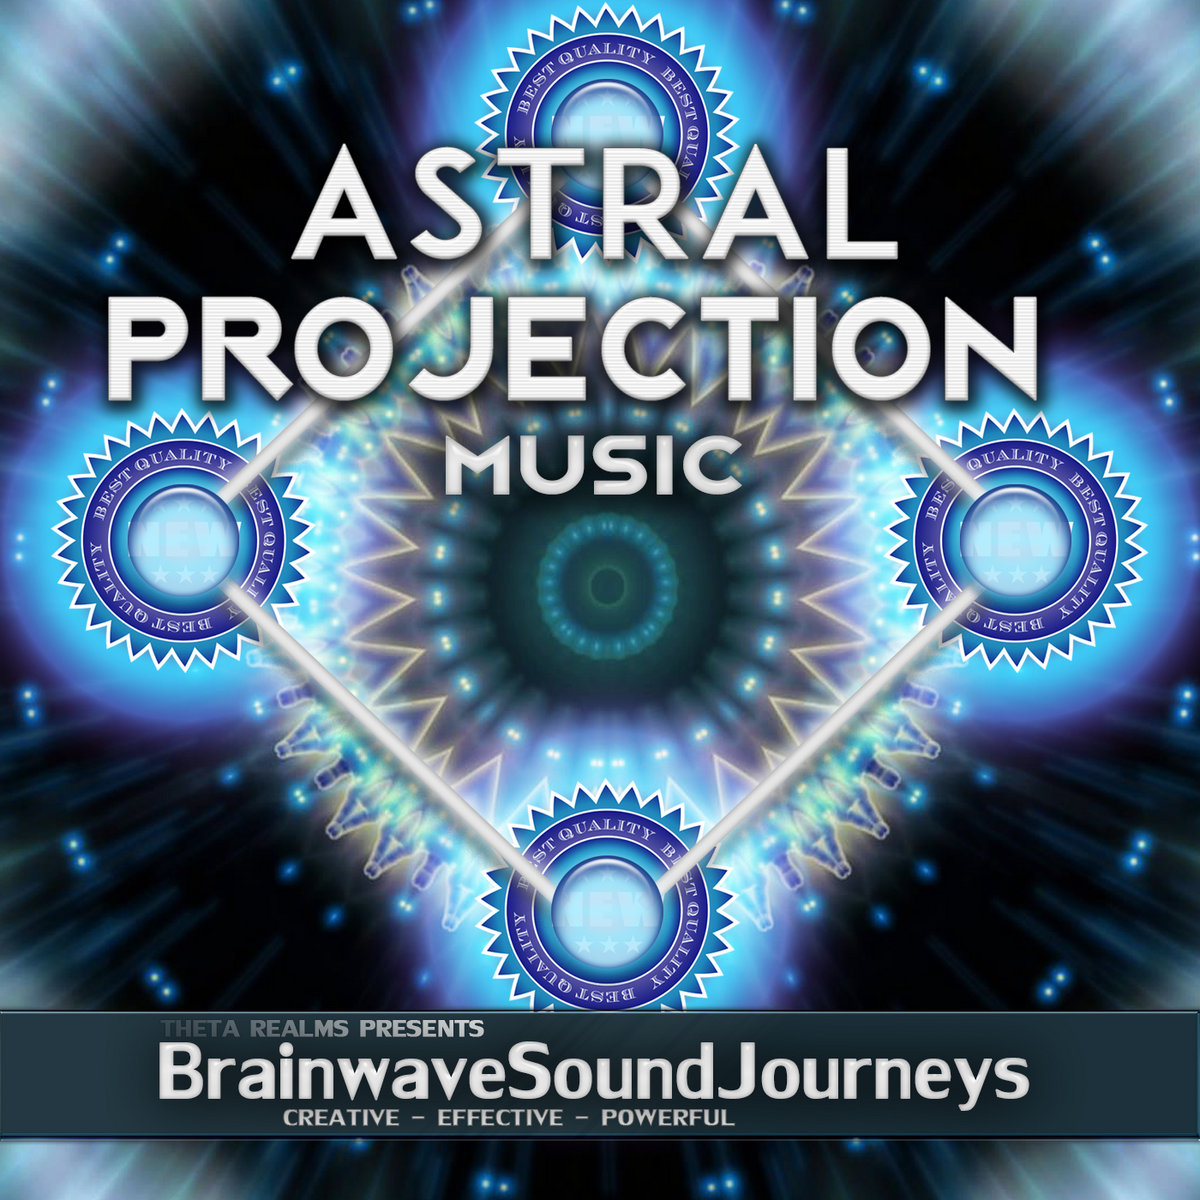 ASTRAL PROJECTION MUSIC Out Of Body EXPERIENCE ( EFFECTIVE